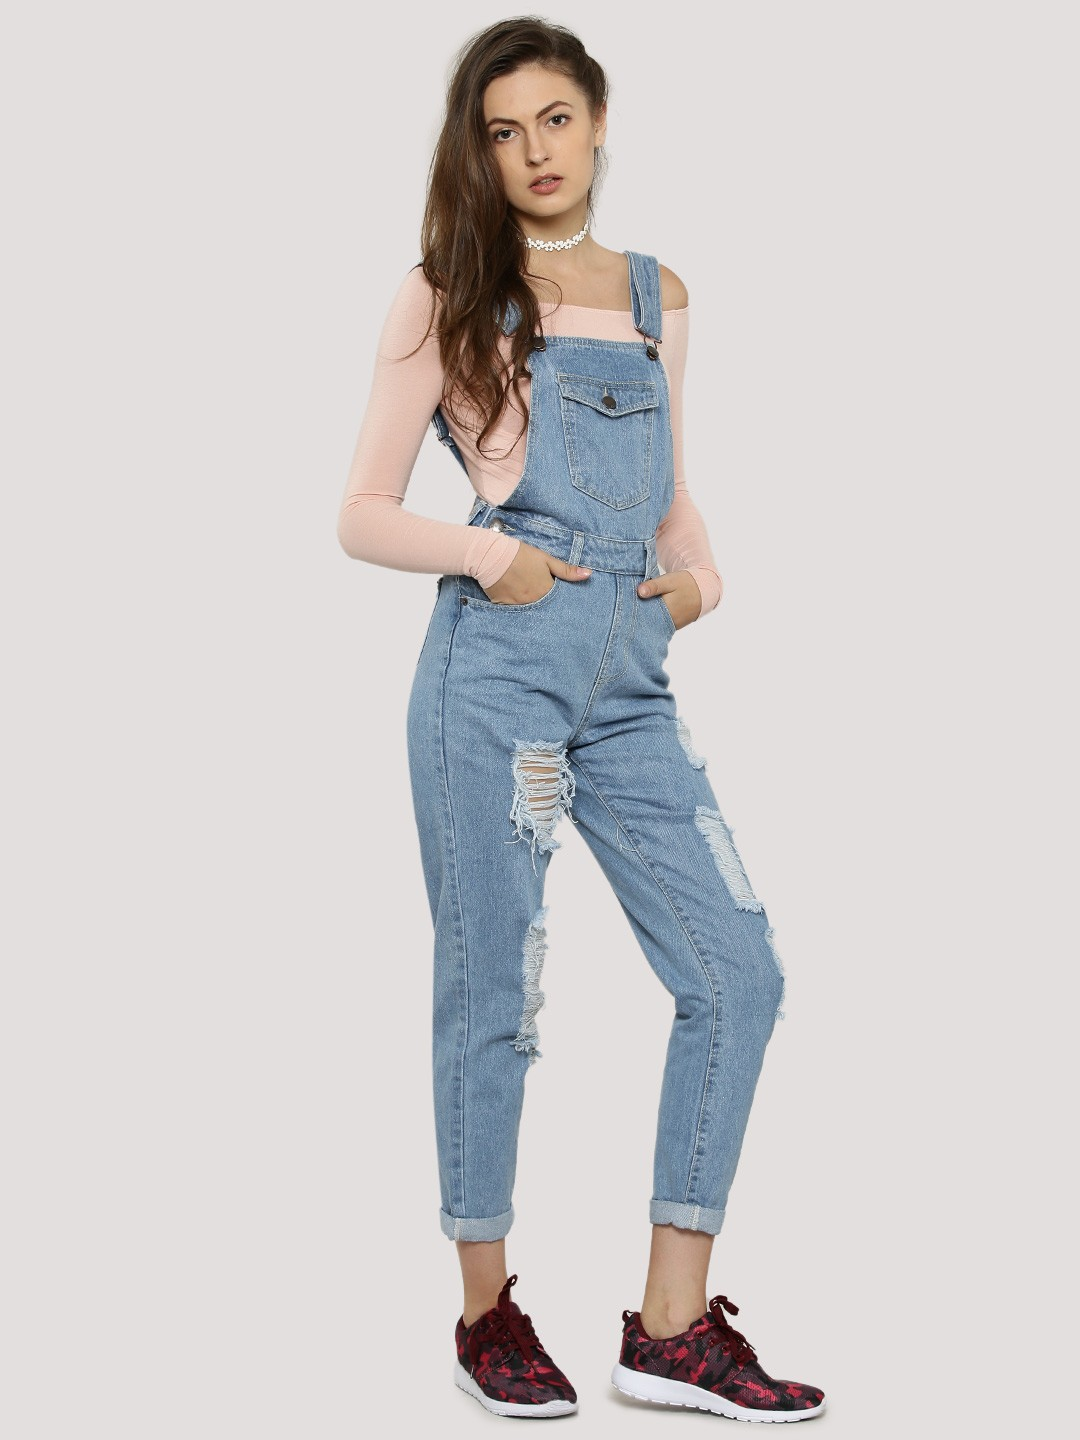 dc2f37872e4 Denim Skirt Dungarees Online India - Gomes Weine AG